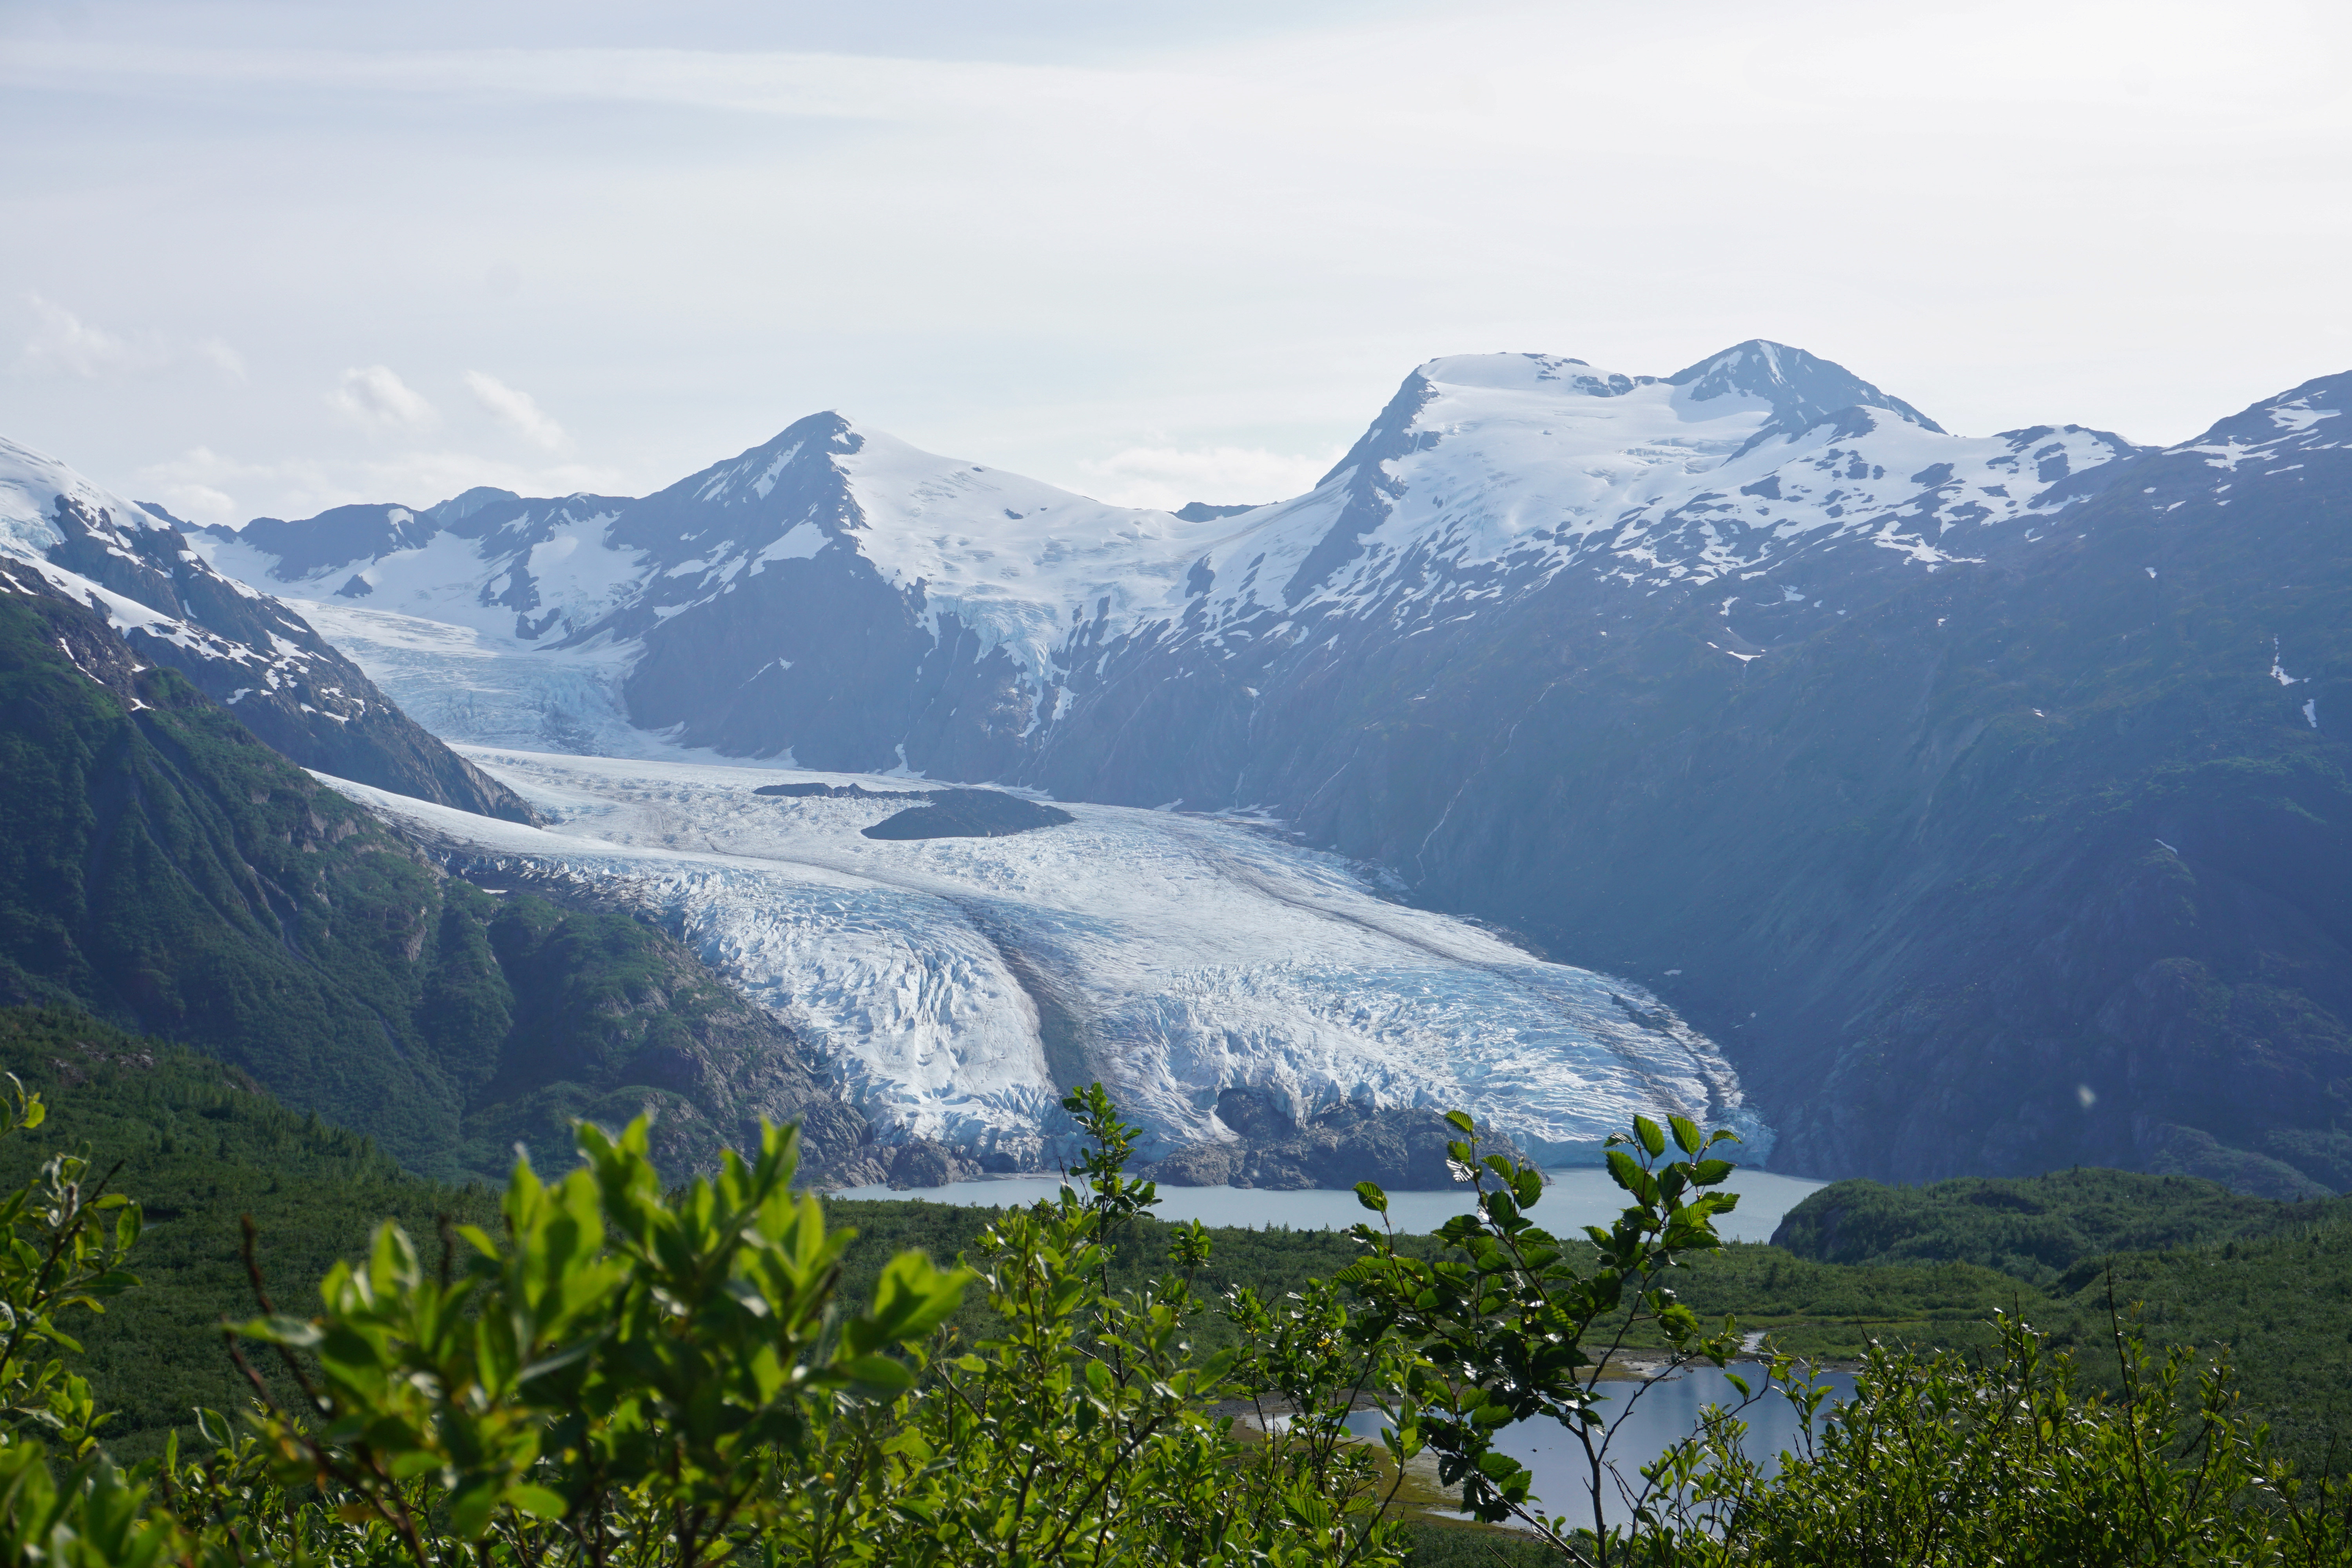 Portage Glacier as seen from Portage Pass in Chugach National Forest in Alaska, U.S. July 7, 2020. REUTERS/Yereth Rosen